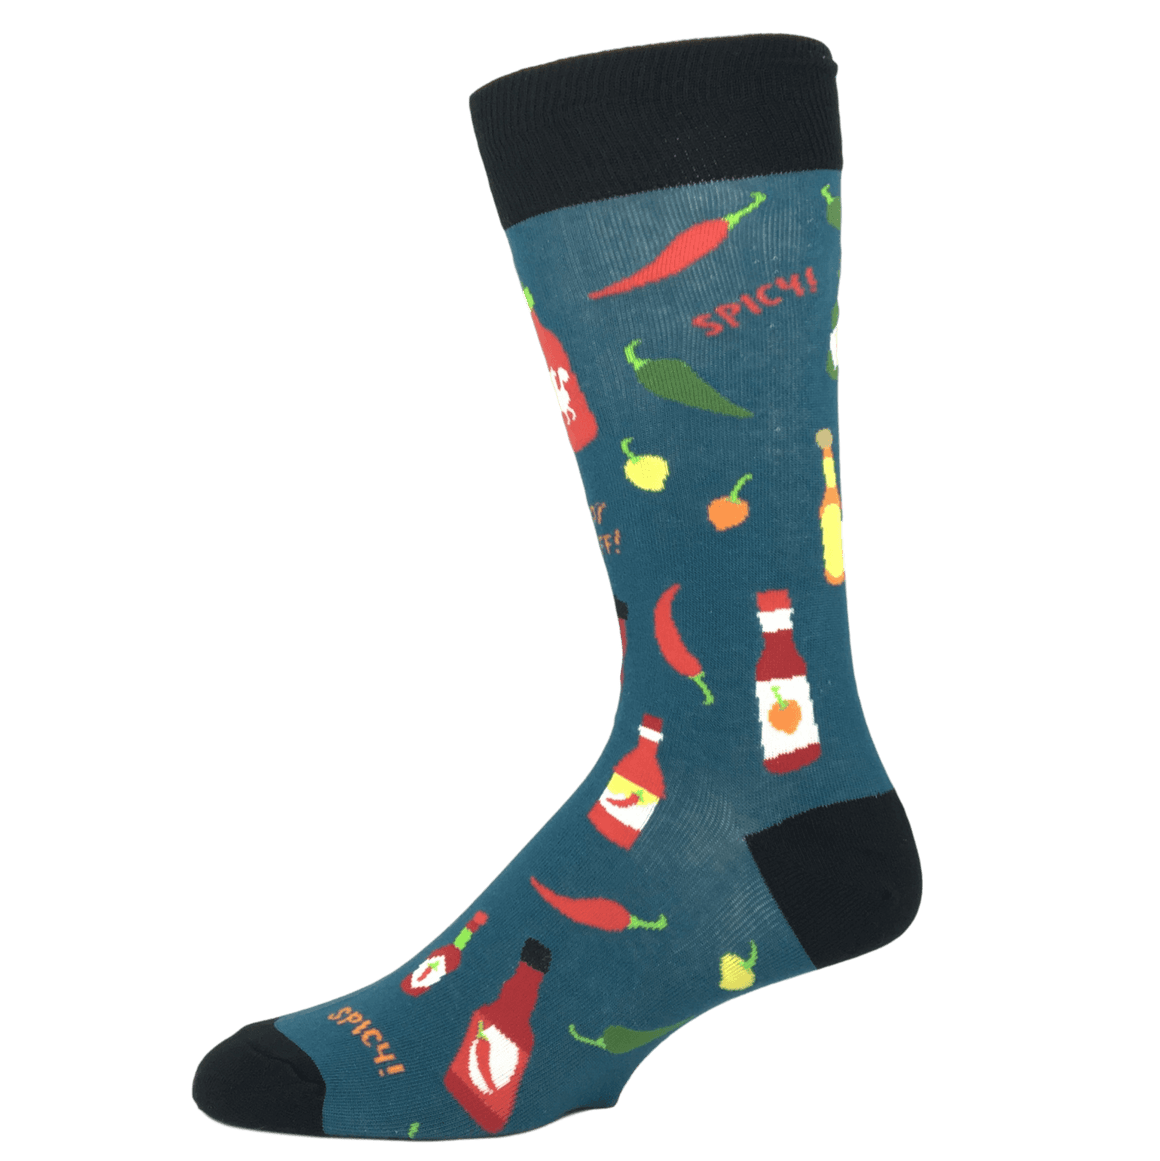 Socks - Hot Stuff Peppers And Hot Sauce Socks By Foot Traffic